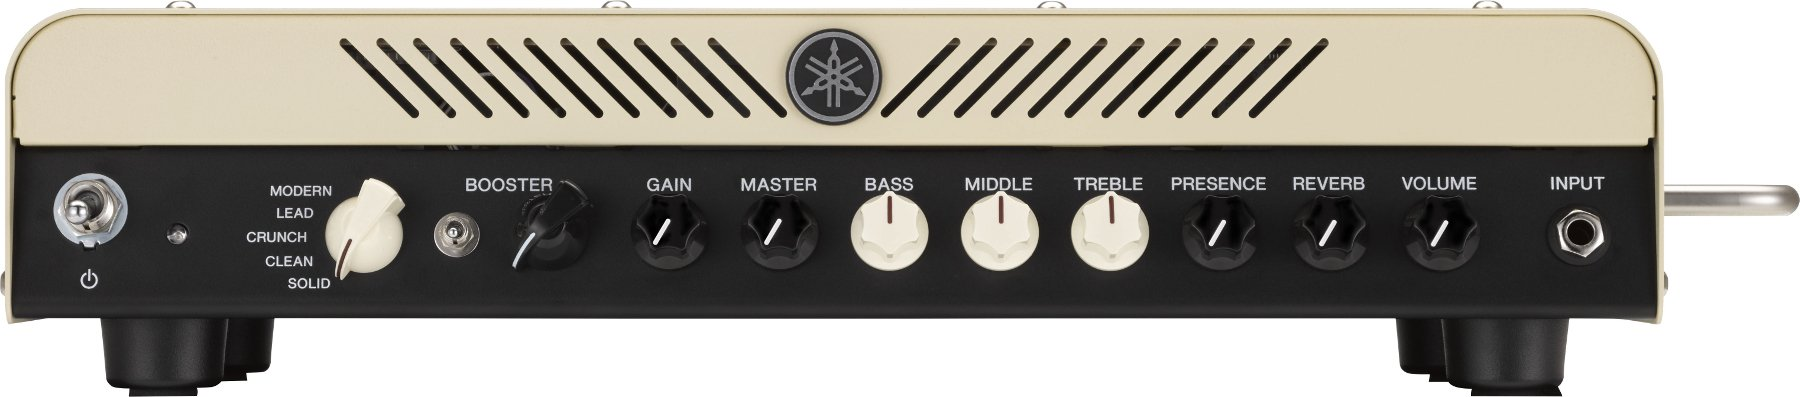 Single-Channel Guitar Amp Head